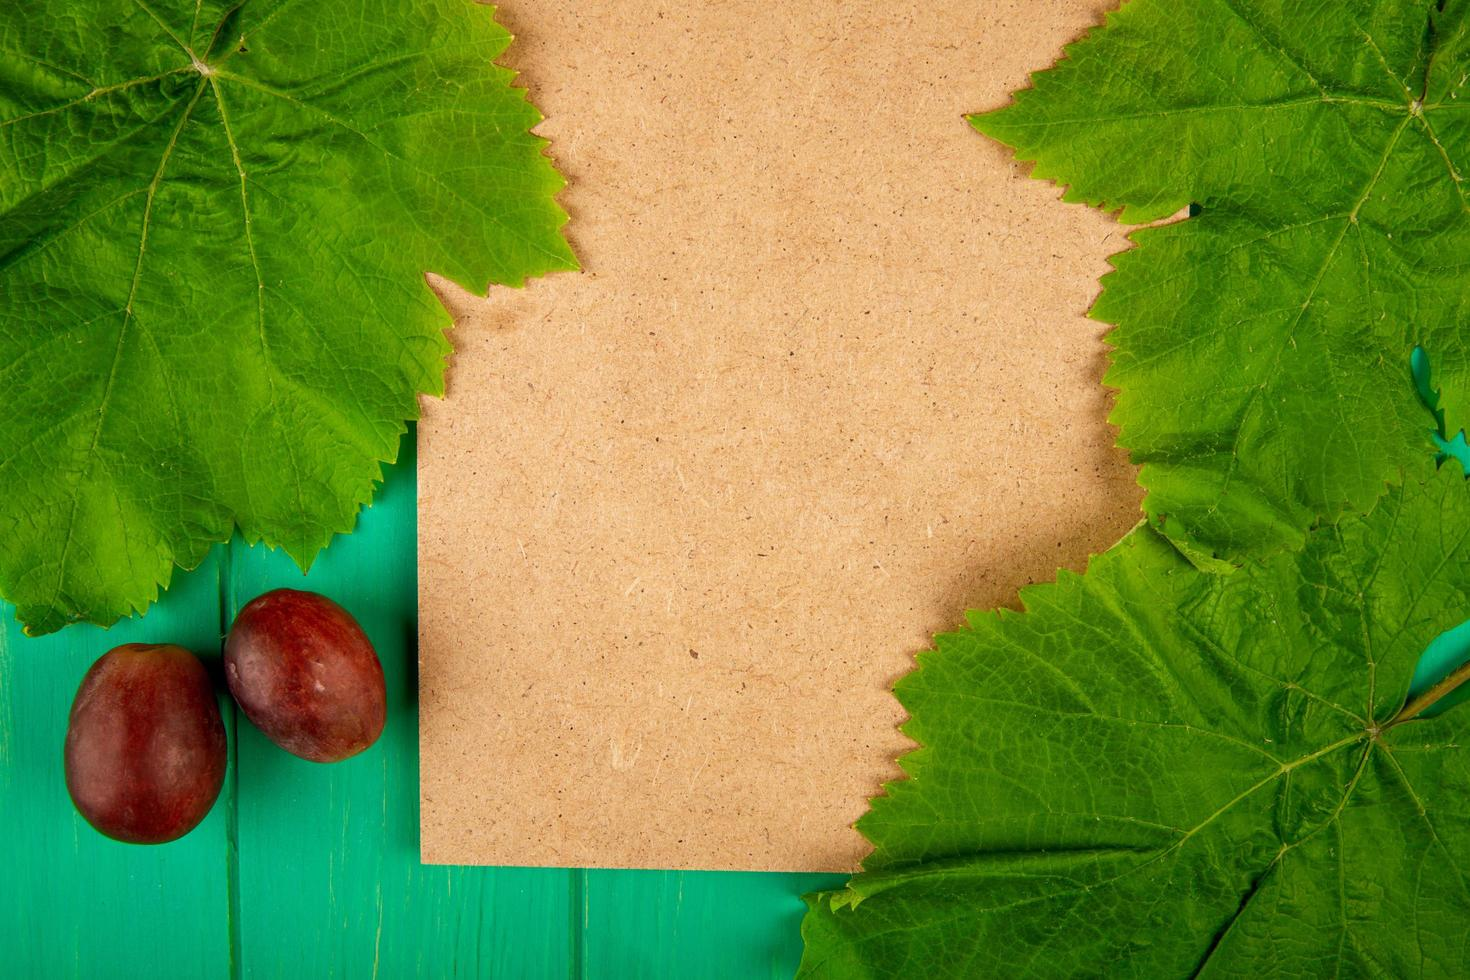 Top view of brown paper with grapes and green leaves photo